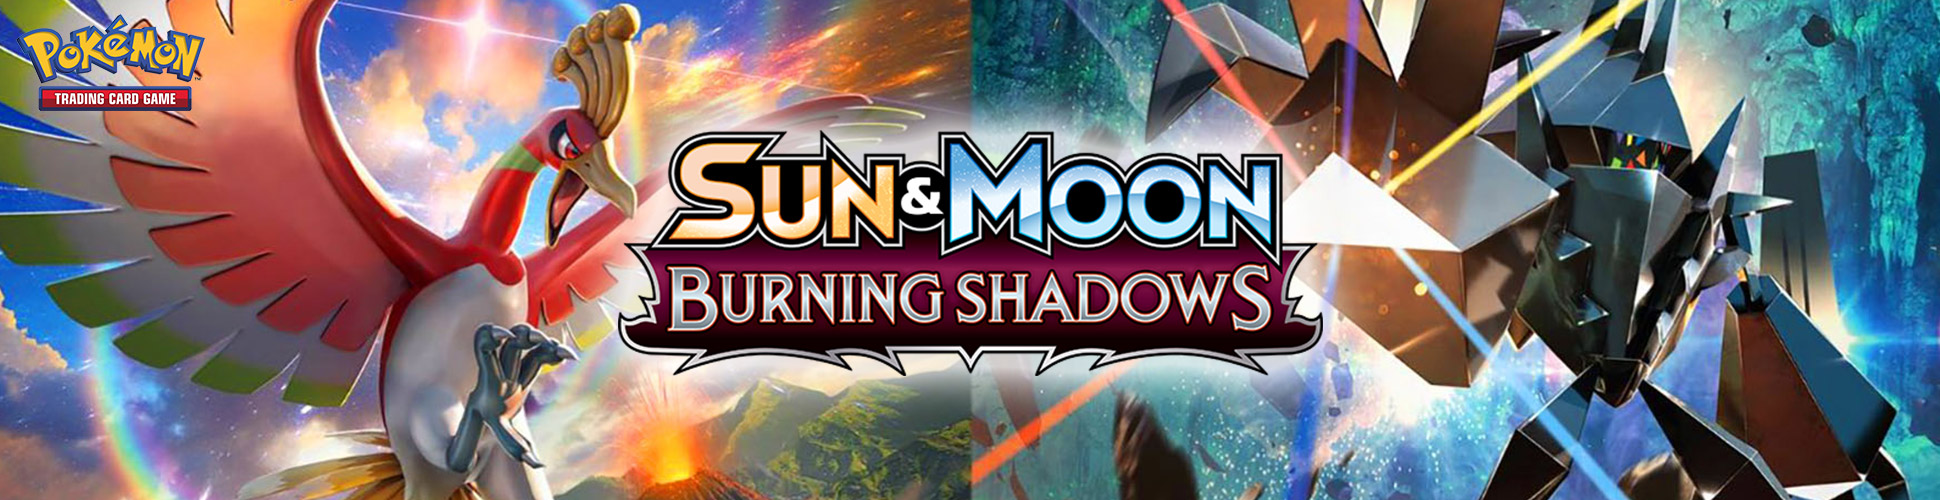 Burning Shadows Singles